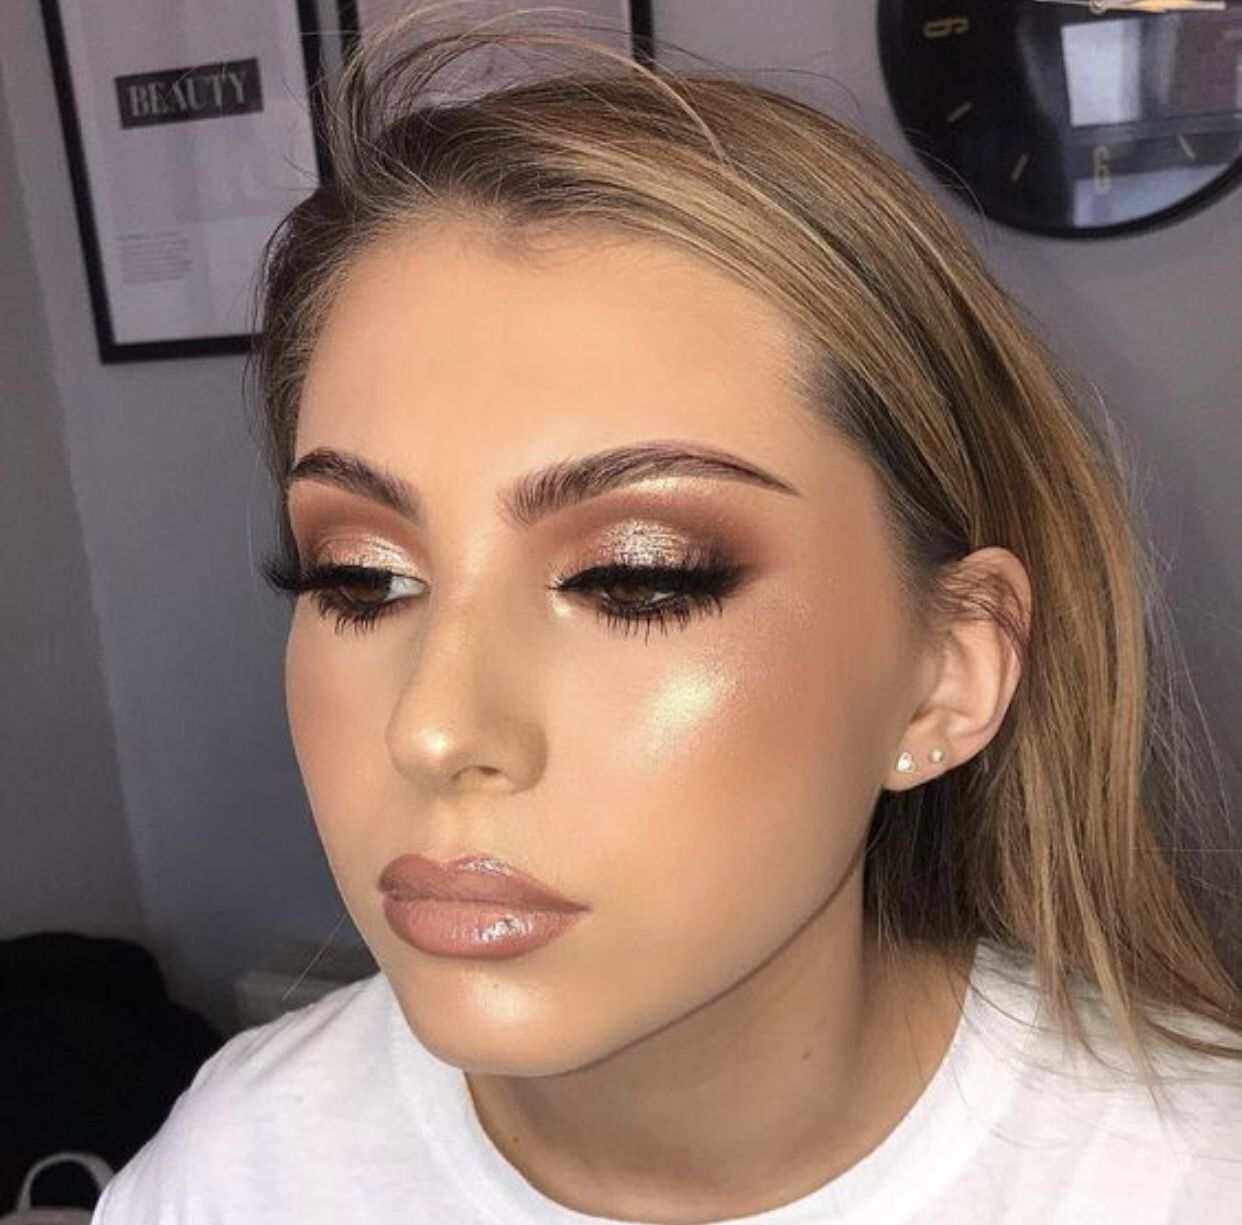 Pin by Clulush on Makeup in 2020 Bridesmaid makeup, Glam